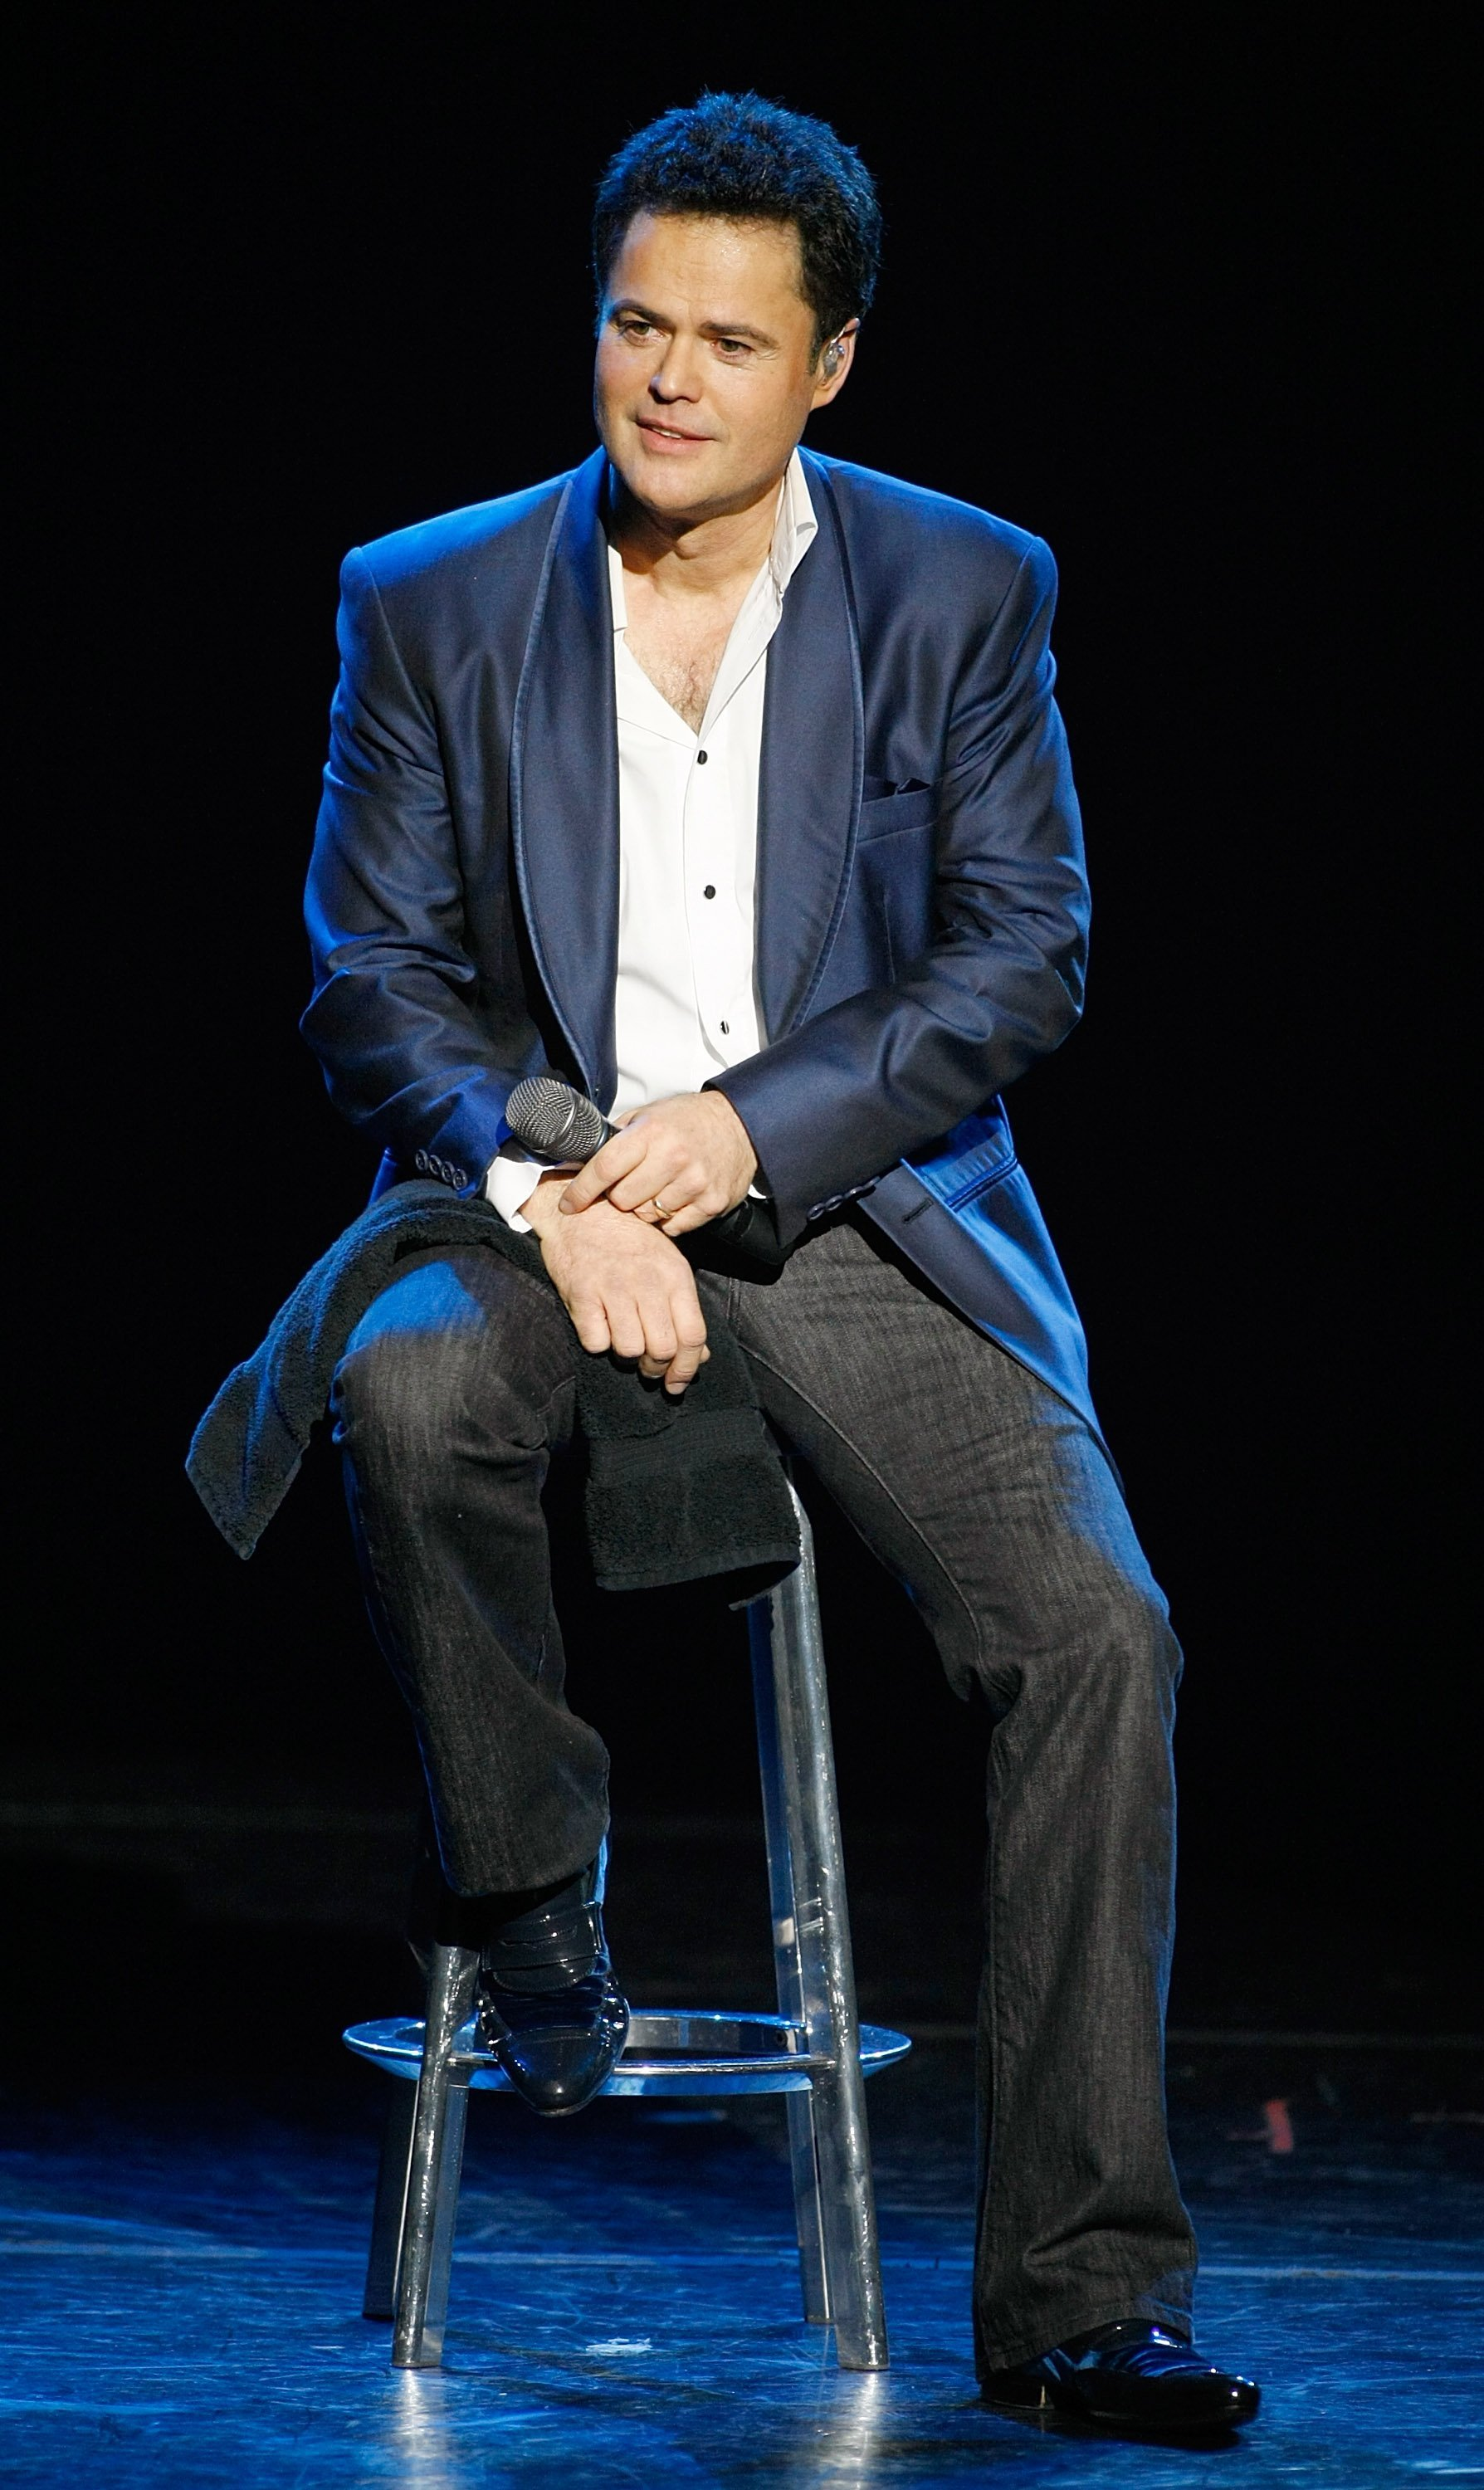 Donny Osmond performs in the Donny & Marie variety show in Las Vegas, Nevada on December 3, 2008   Photo: Getty Images